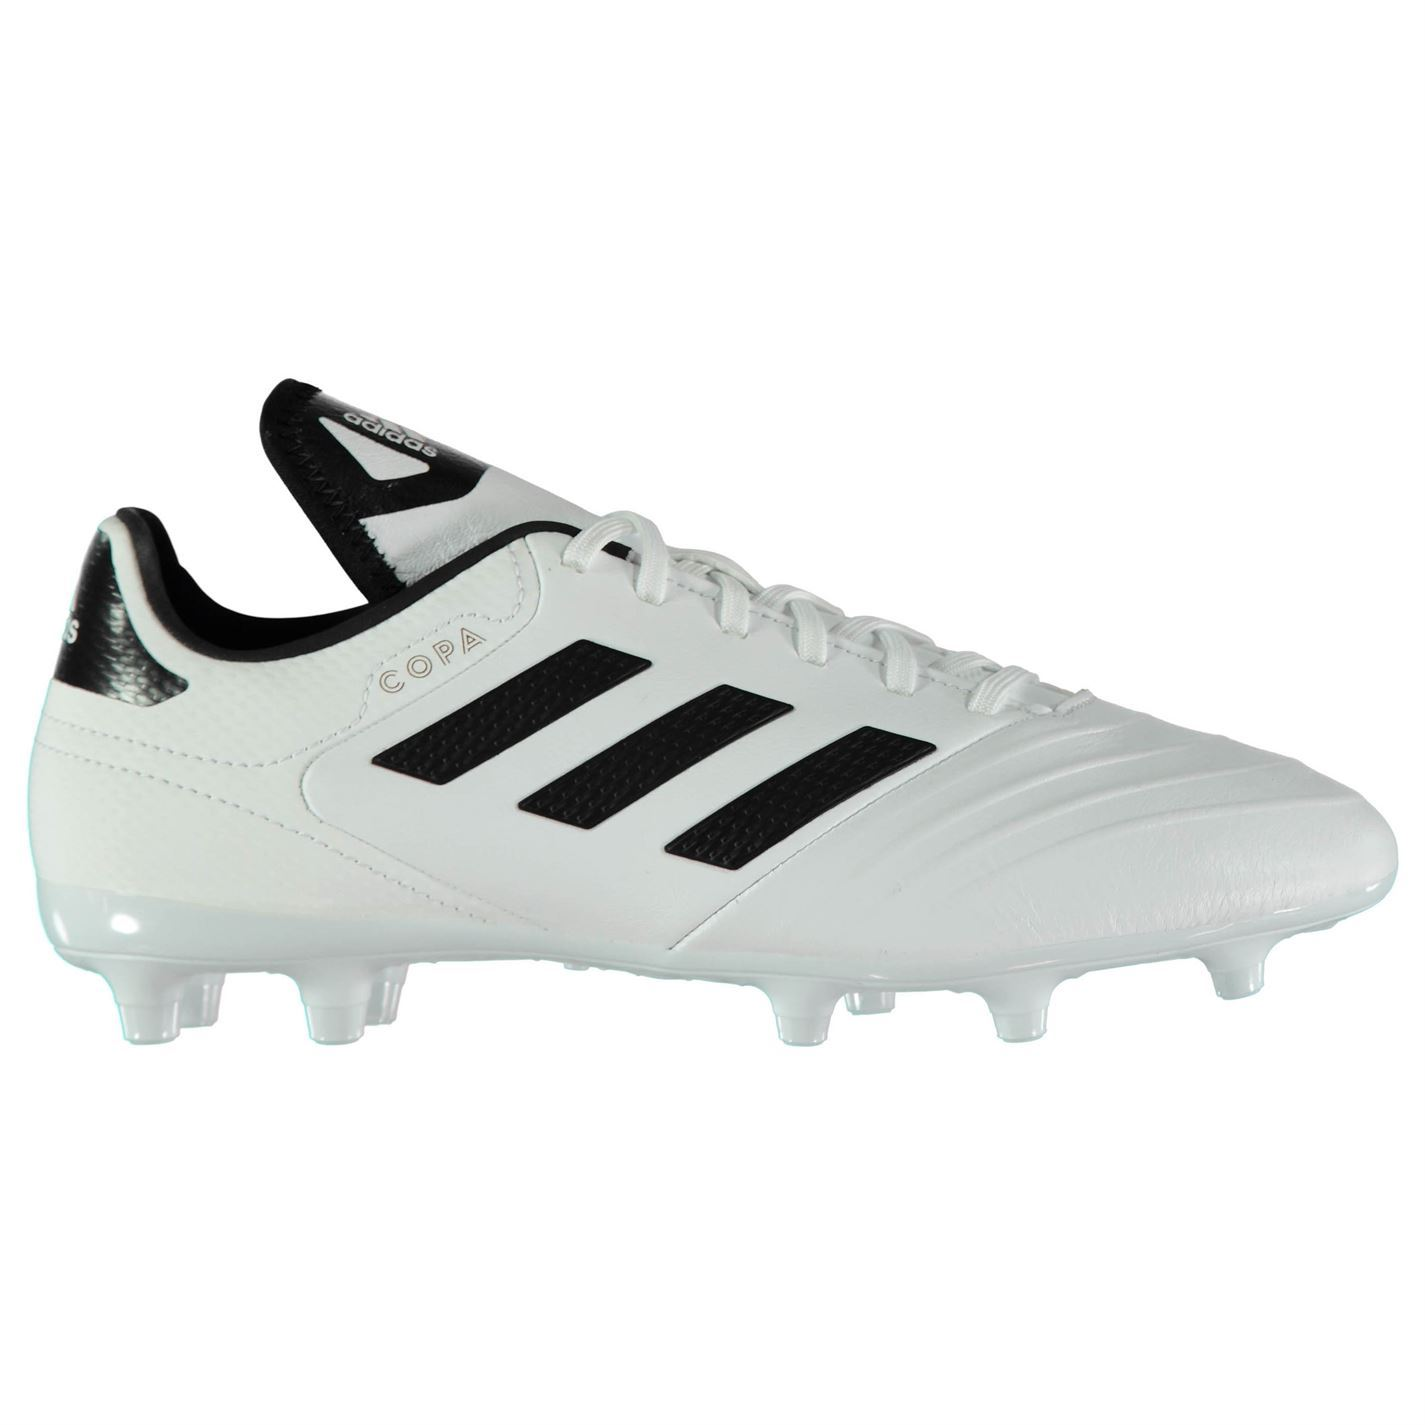 28f1a38997c ... adidas Copa 18.3 Firm Ground Football Boots Mens White Black Gold  Soccer Cleats ...